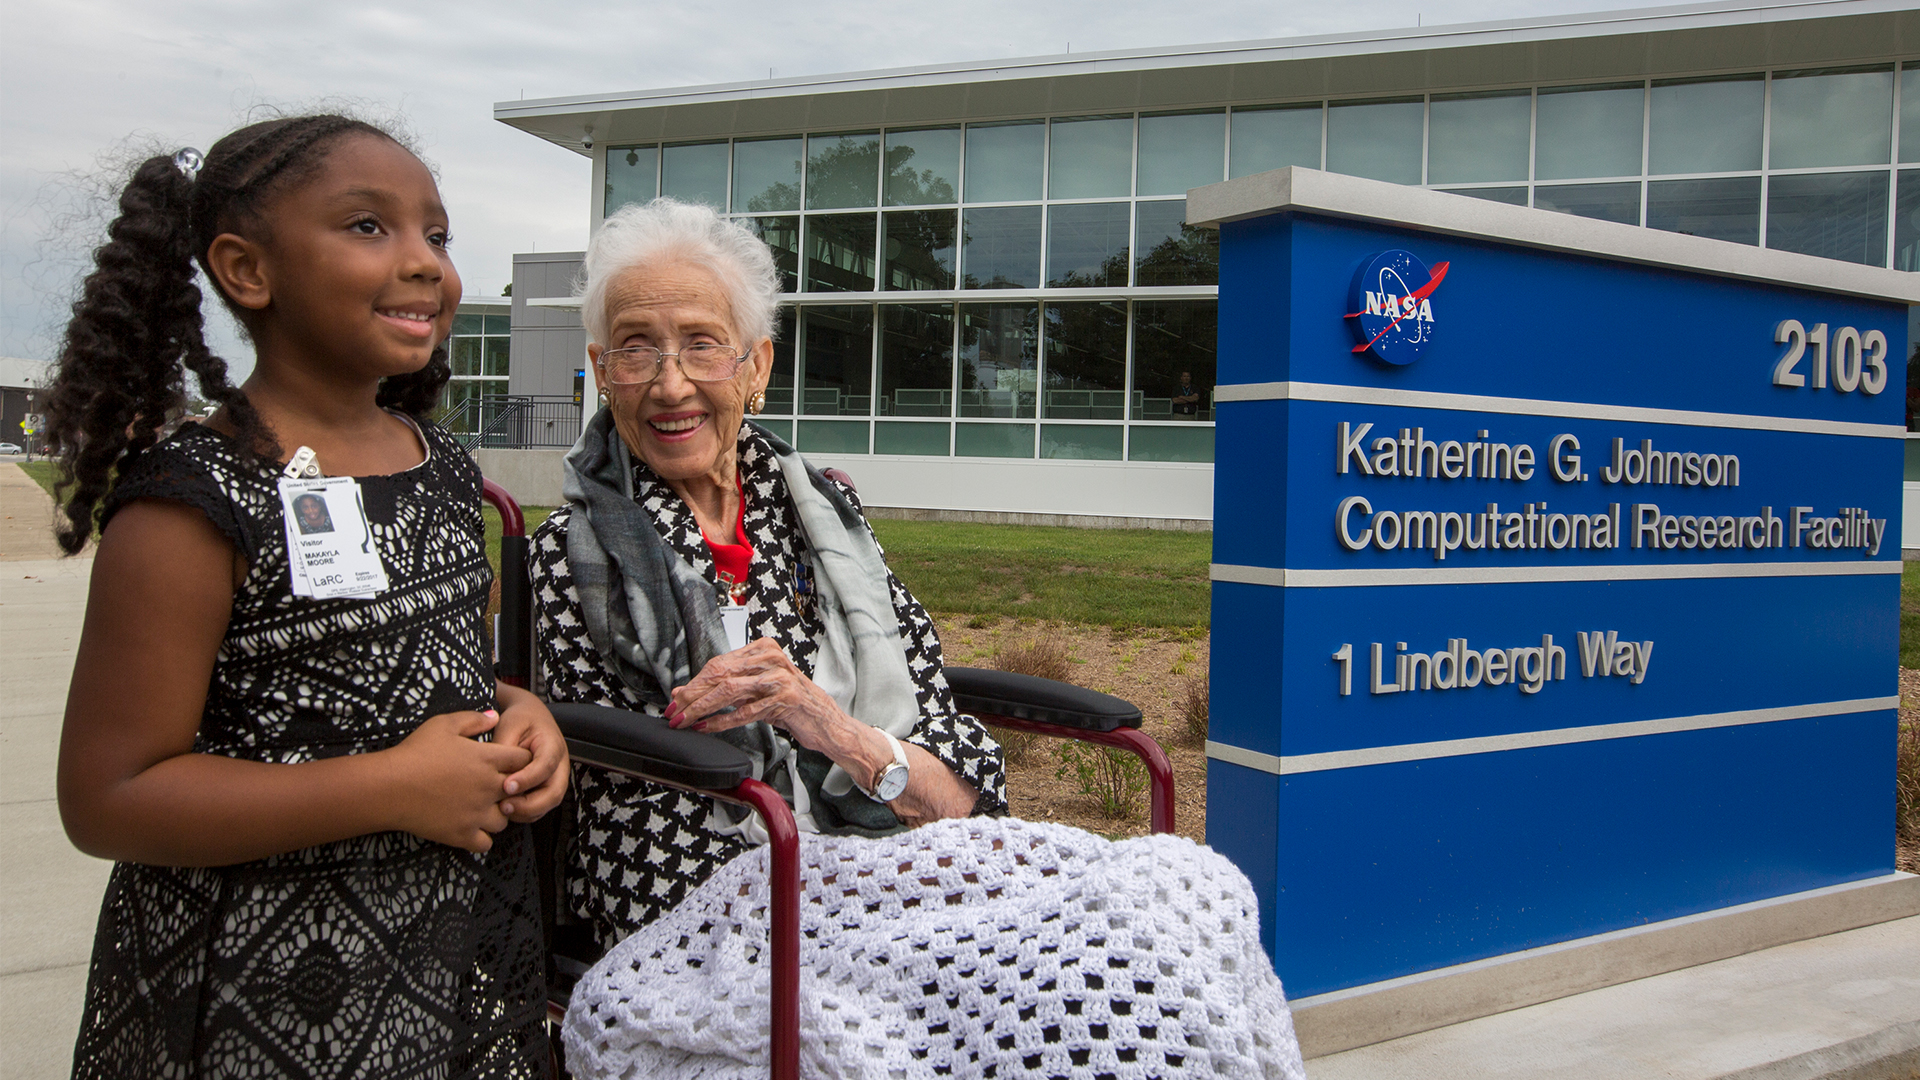 In honor of her contributions to space travel, NASA named a building in Johnson's honor.